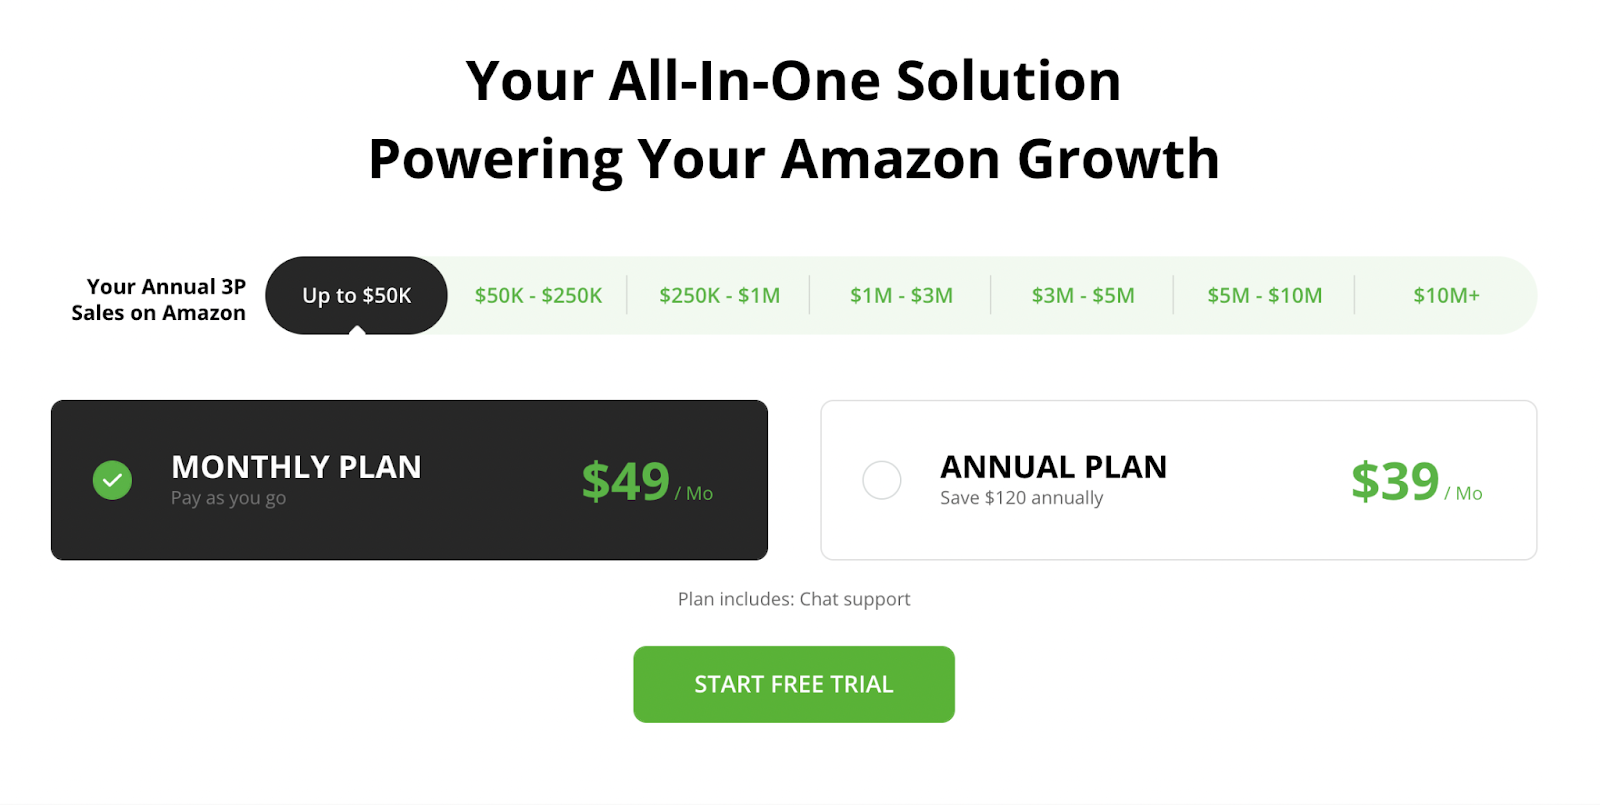 How much you'll pay using Scope SellerLabs